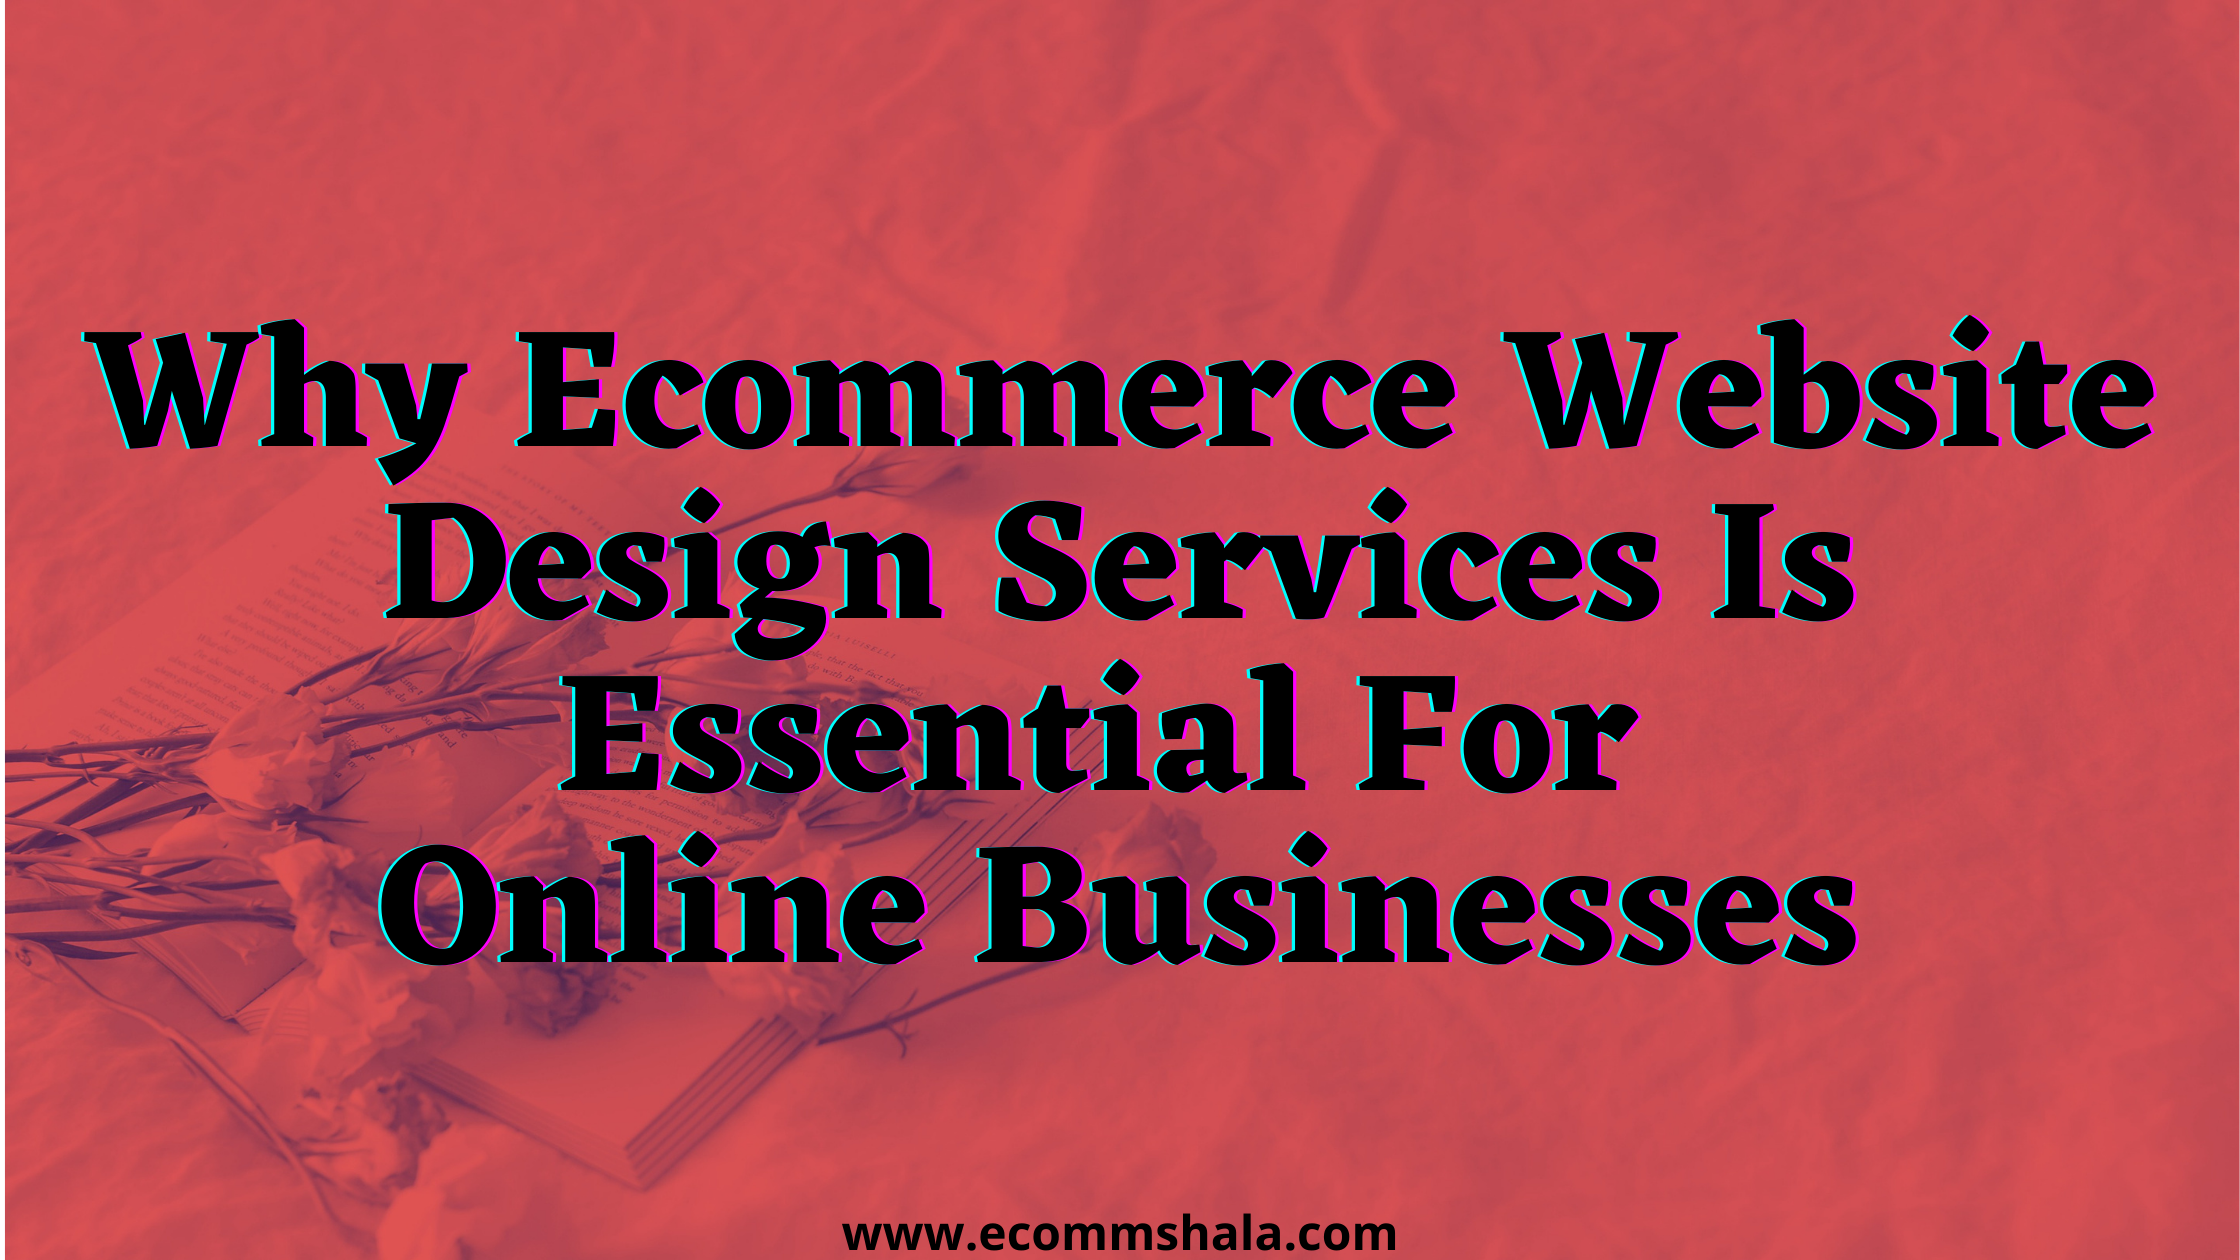 Why Ecommerce Website Design Services Is Essential For Online Businesses